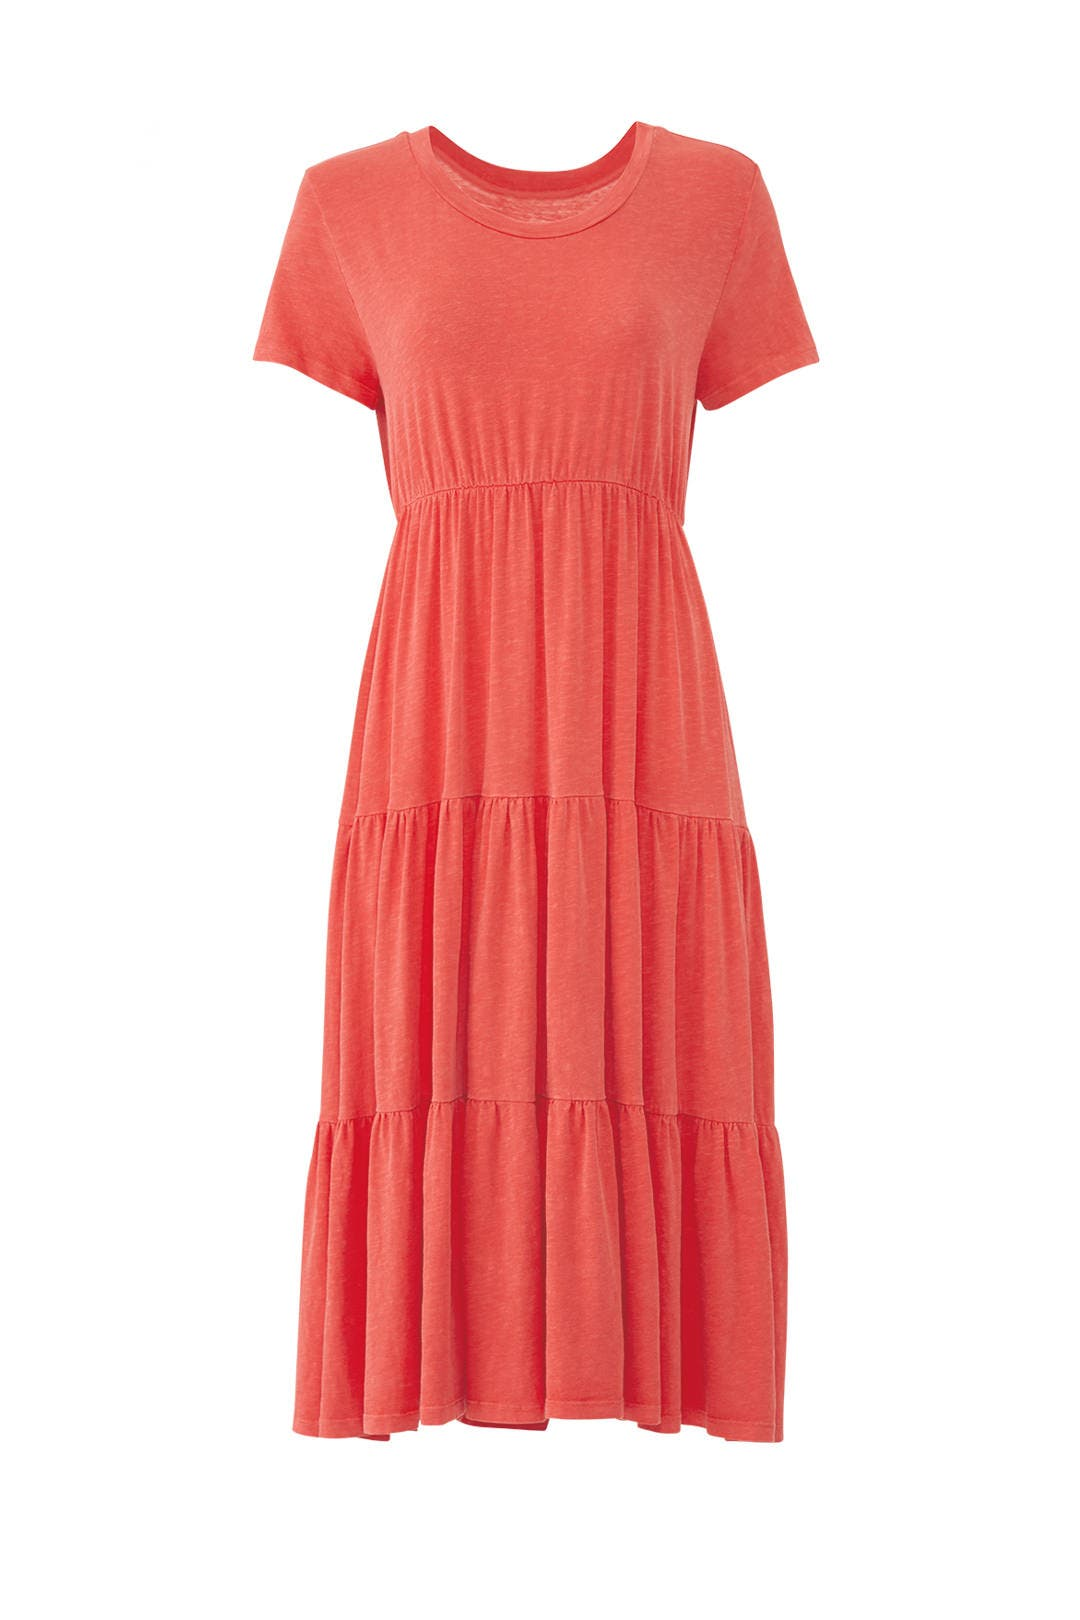 f98b2154bd062 Peasant Midi Dress by Sundry for $30 | Rent the Runway